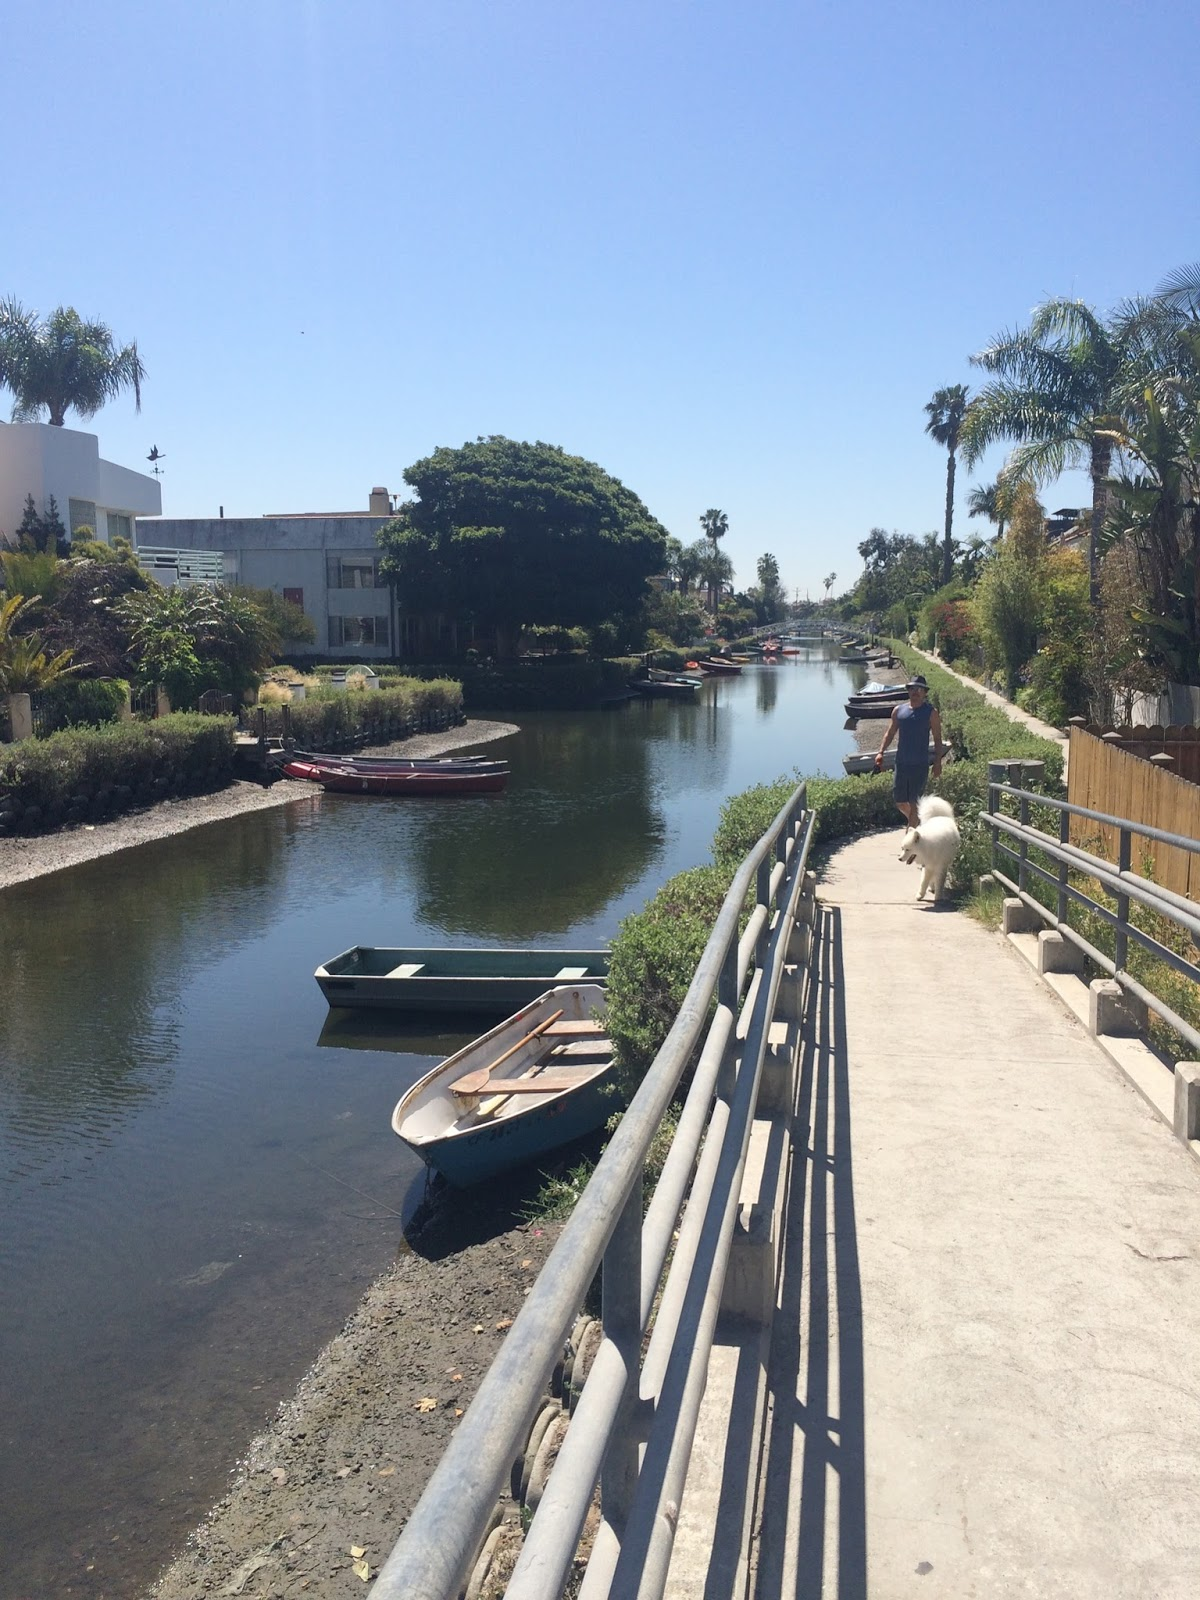 Los Angeles - Venice Beach Canal